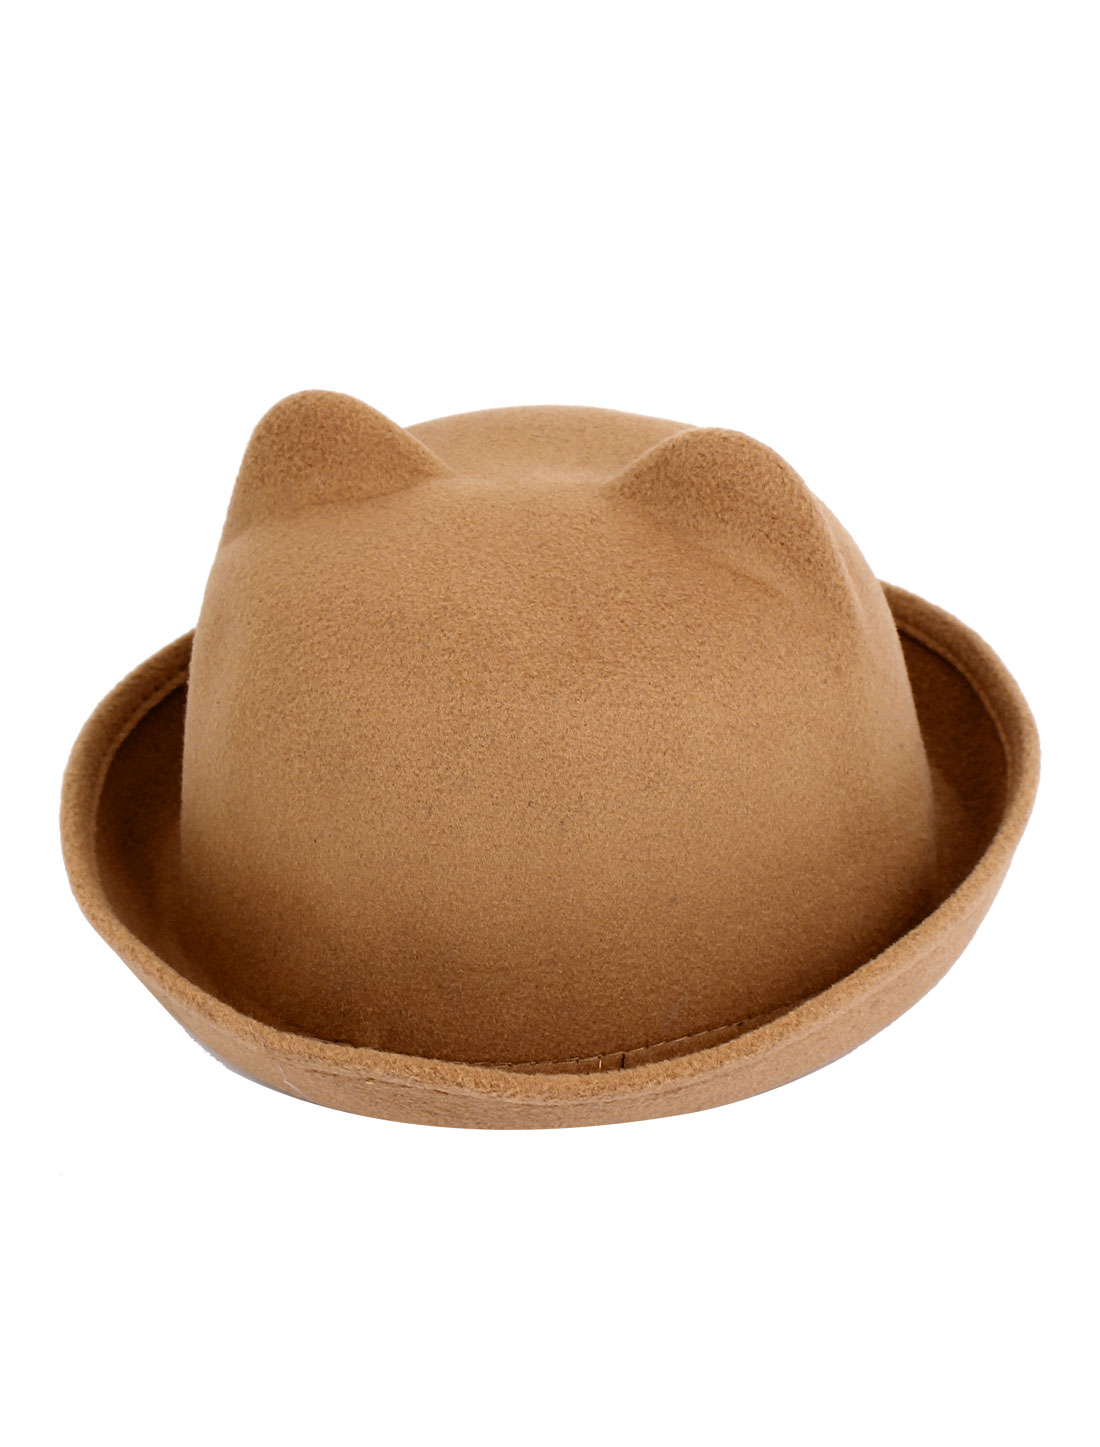 Girl Felt Cat Ear Design Short Brim Wedding Party Winter Bowler Hat Cap Khaki Color